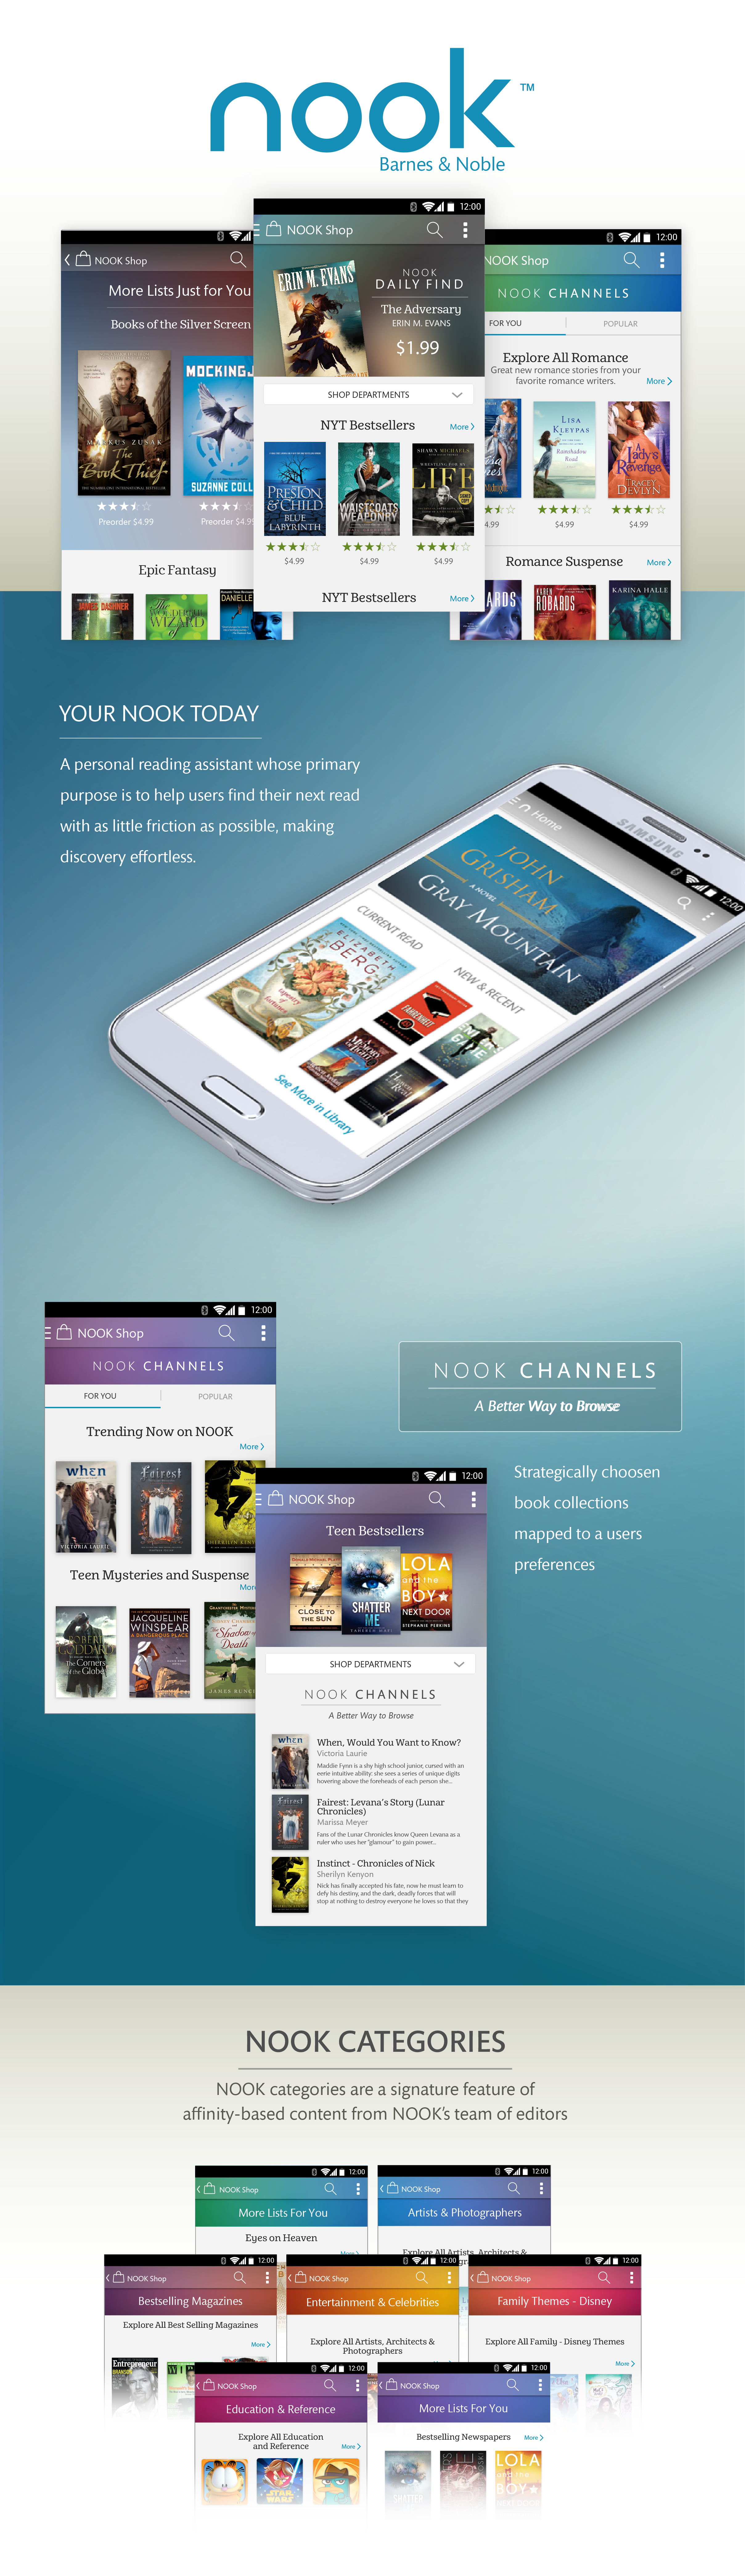 nook_overview_01.png